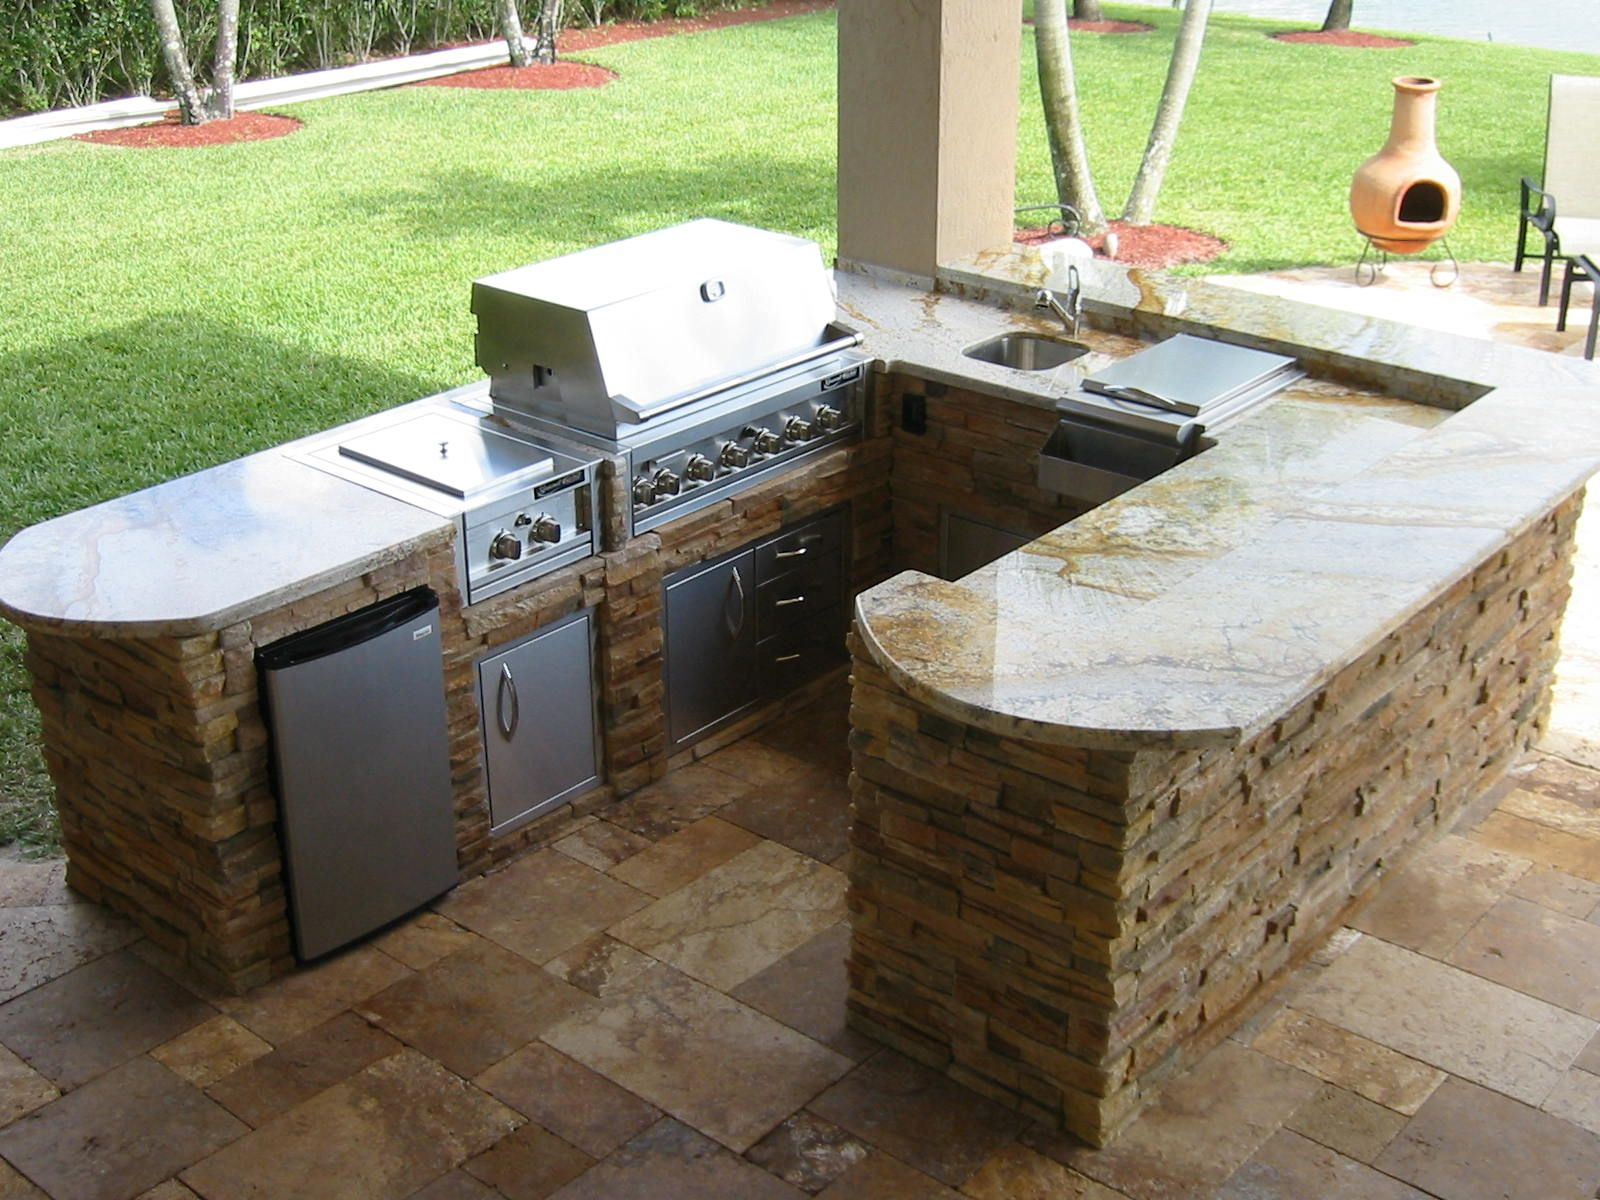 Outdoor grills built in plans grills parts for Backyard barbecues outdoor kitchen